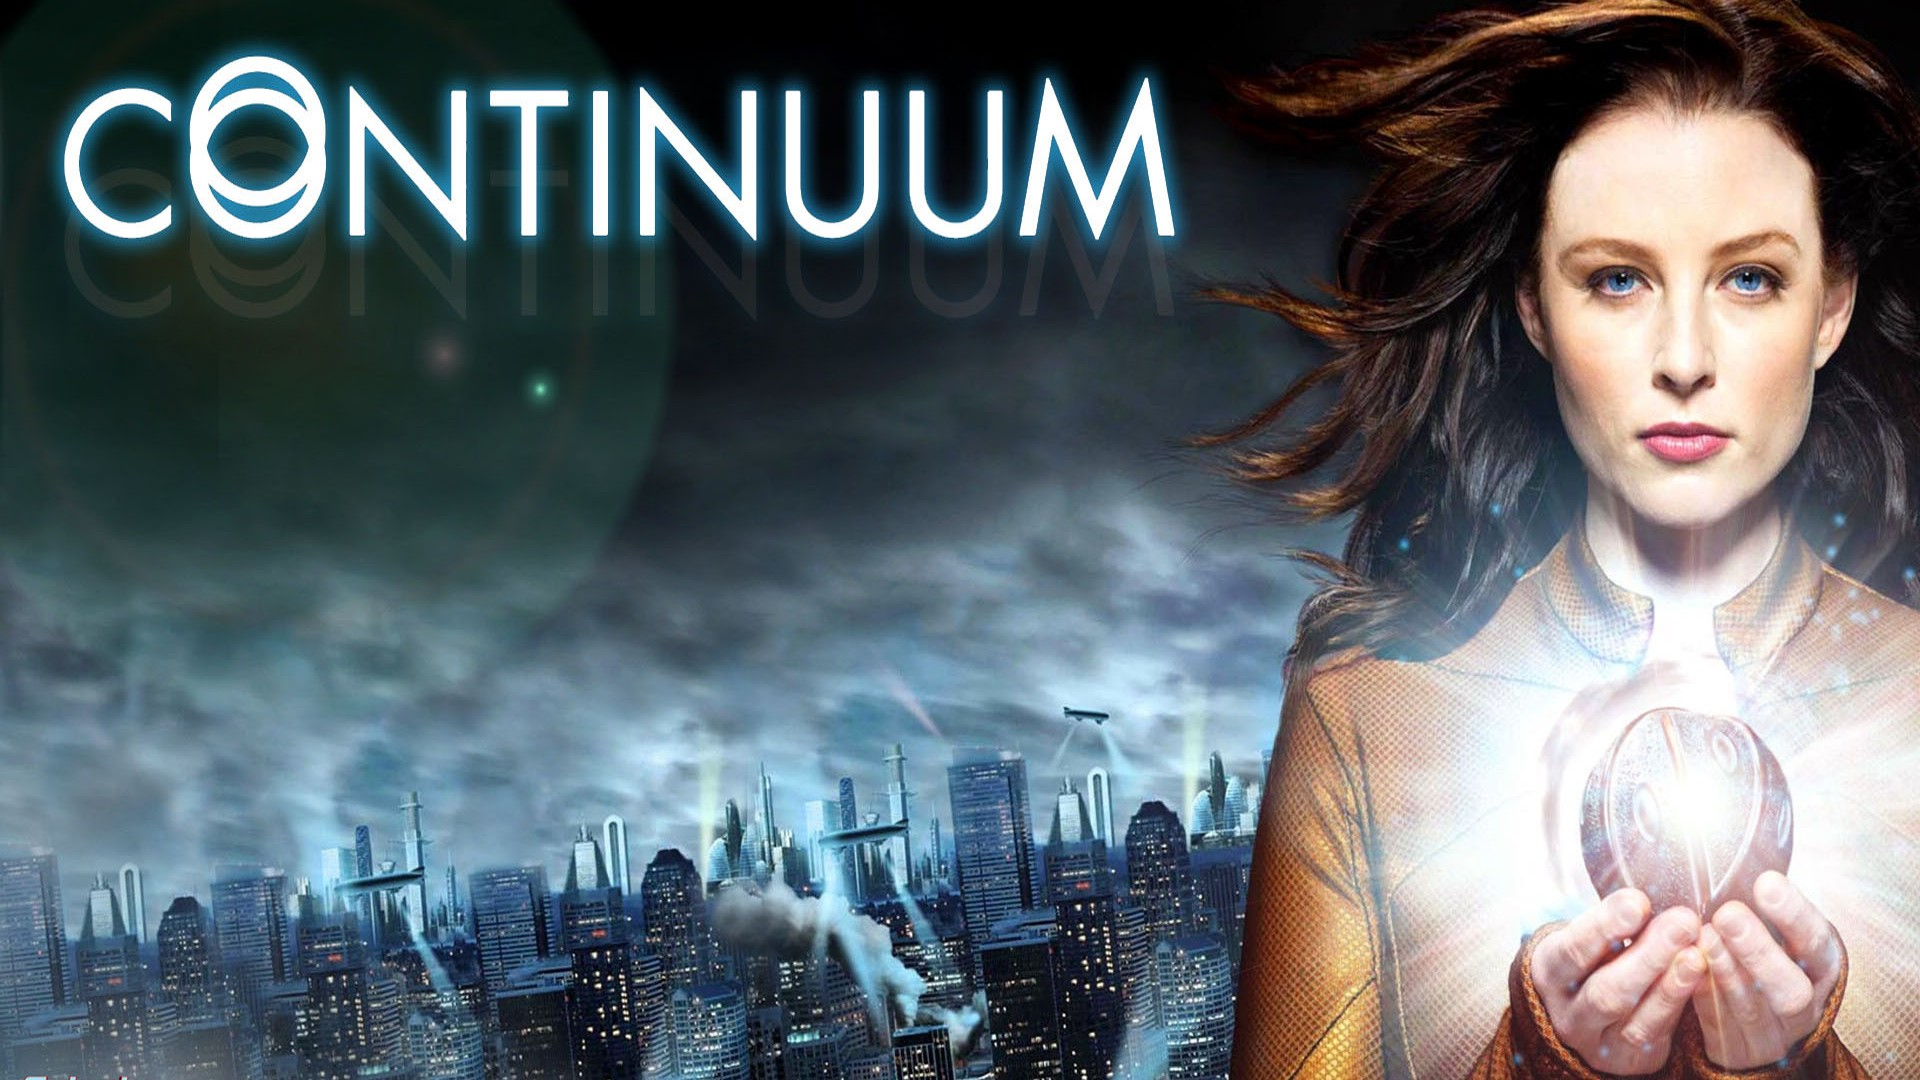 Continuum wallpaper 4